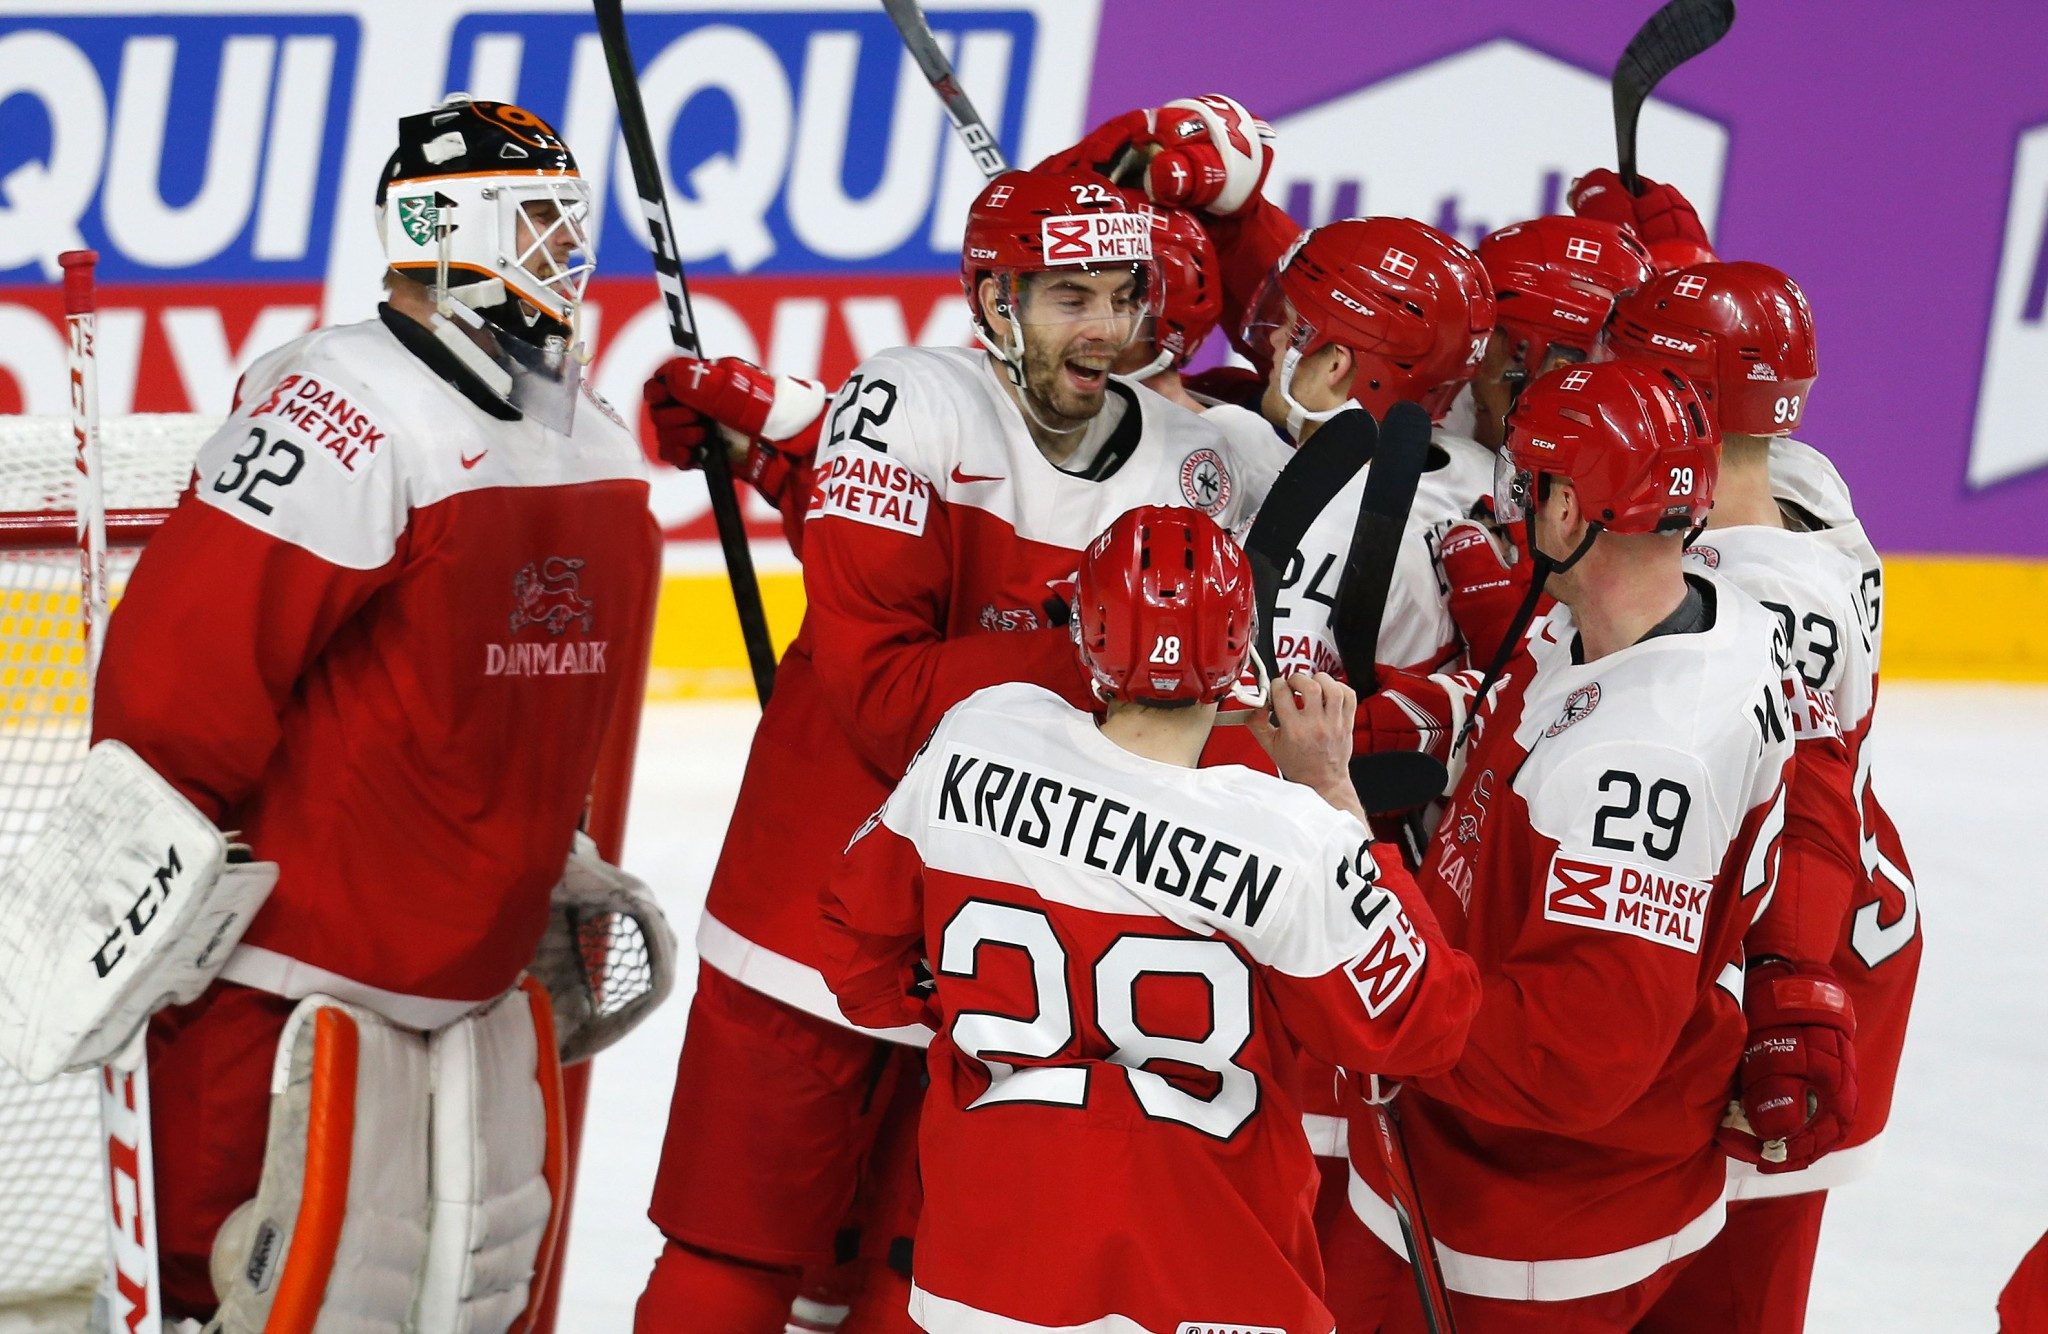 Hosts Denmark to open against Germany at 2018 IIHF World Championship